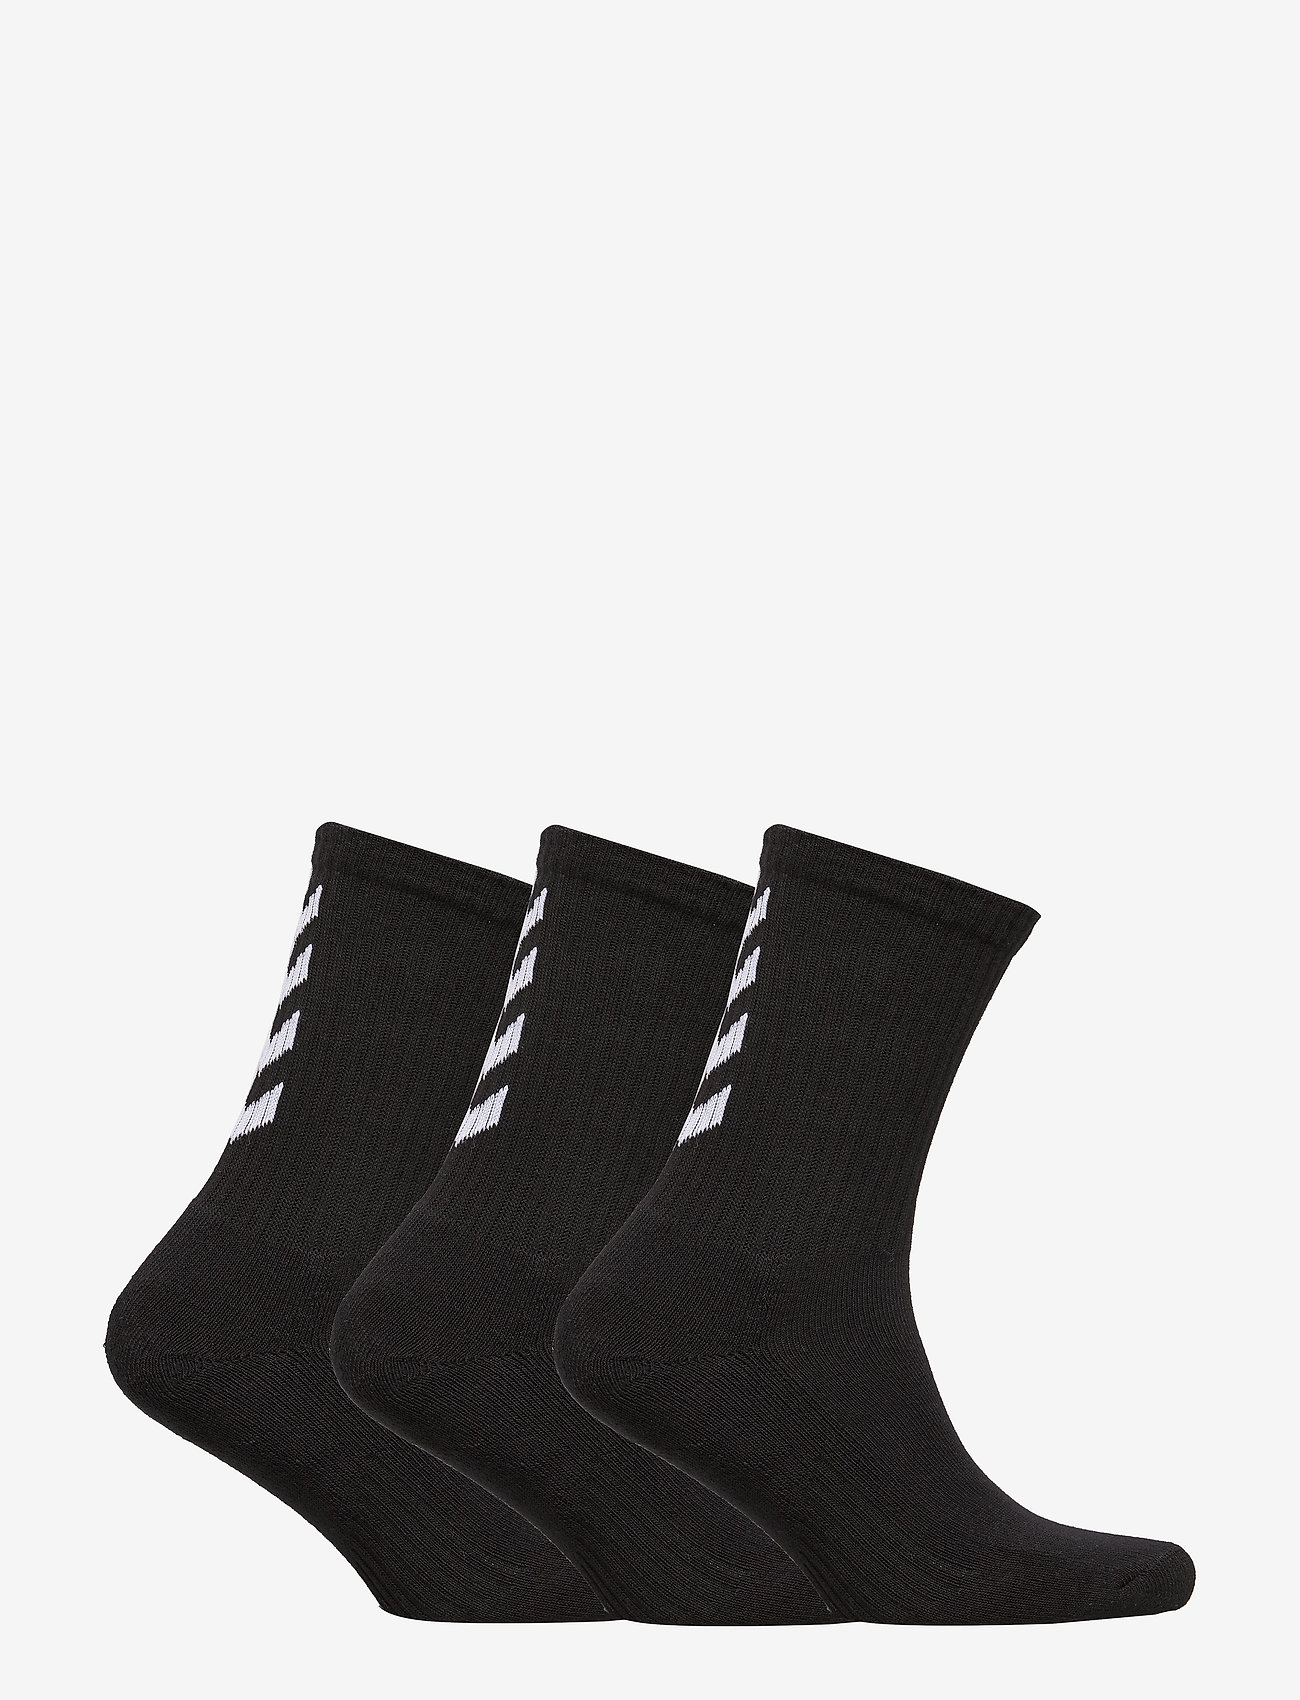 Hummel - FUNDAMENTAL 3-PACK SOCK - regular socks - black - 1